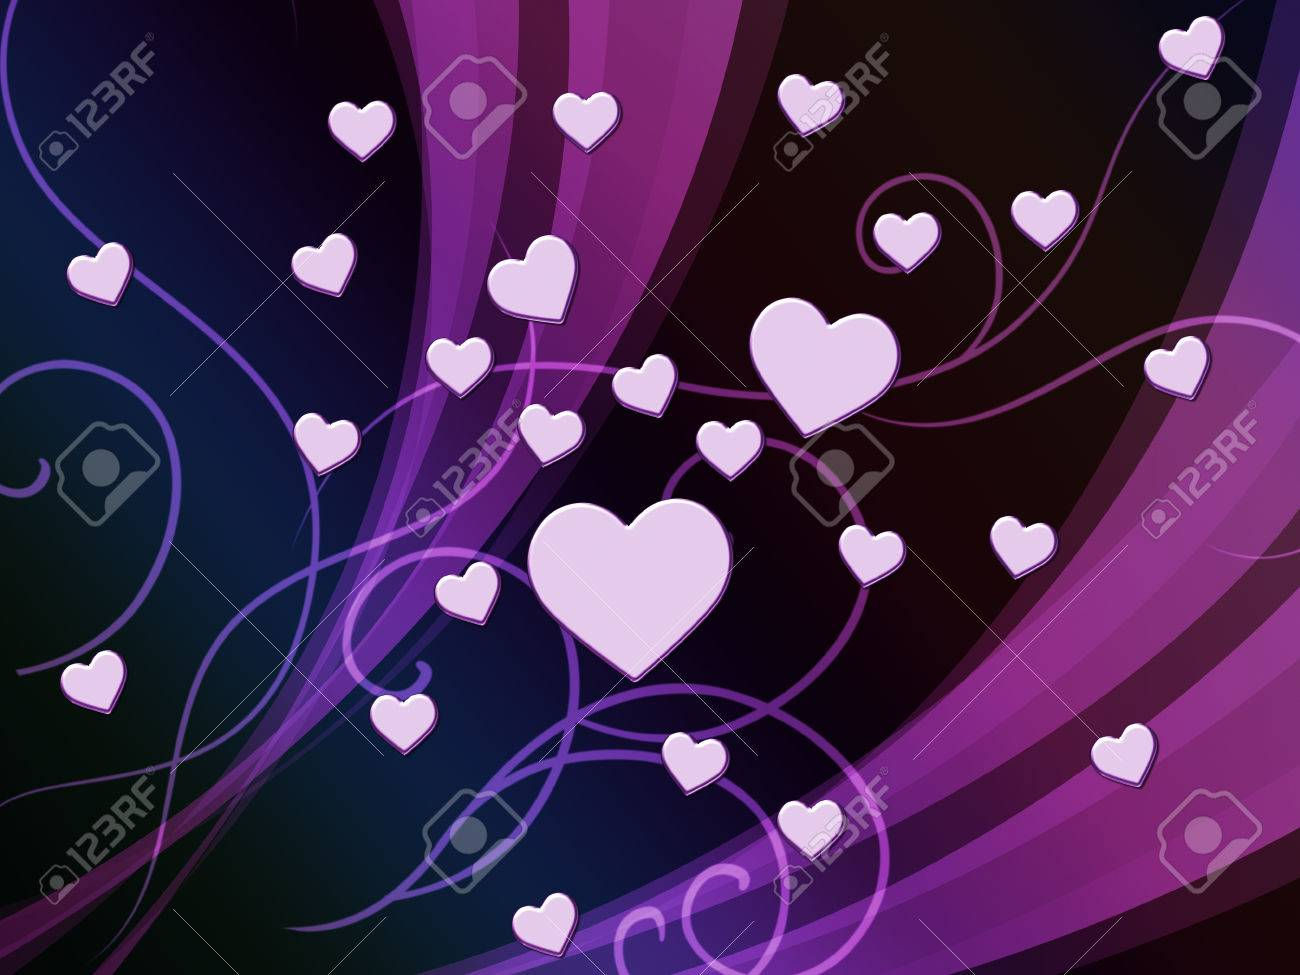 Purple Hearts Background Showing Romantic And Passionate Wallpaper Stock Photo